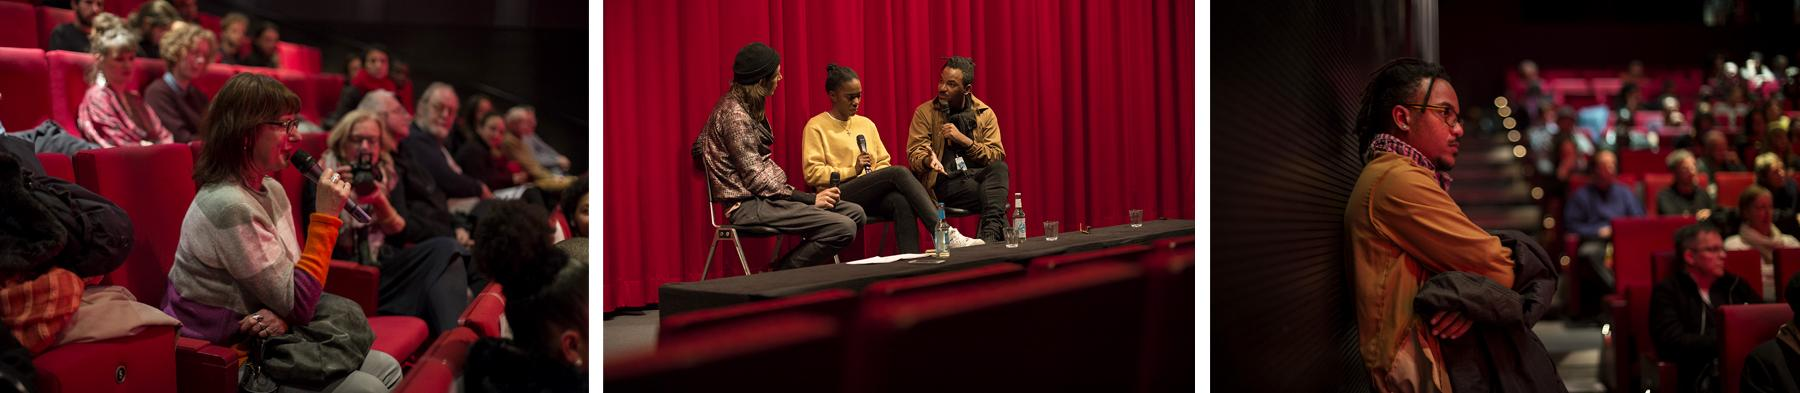 Ery Claver (director) attending his own screening and giving answers in a Q&A, November 2019.